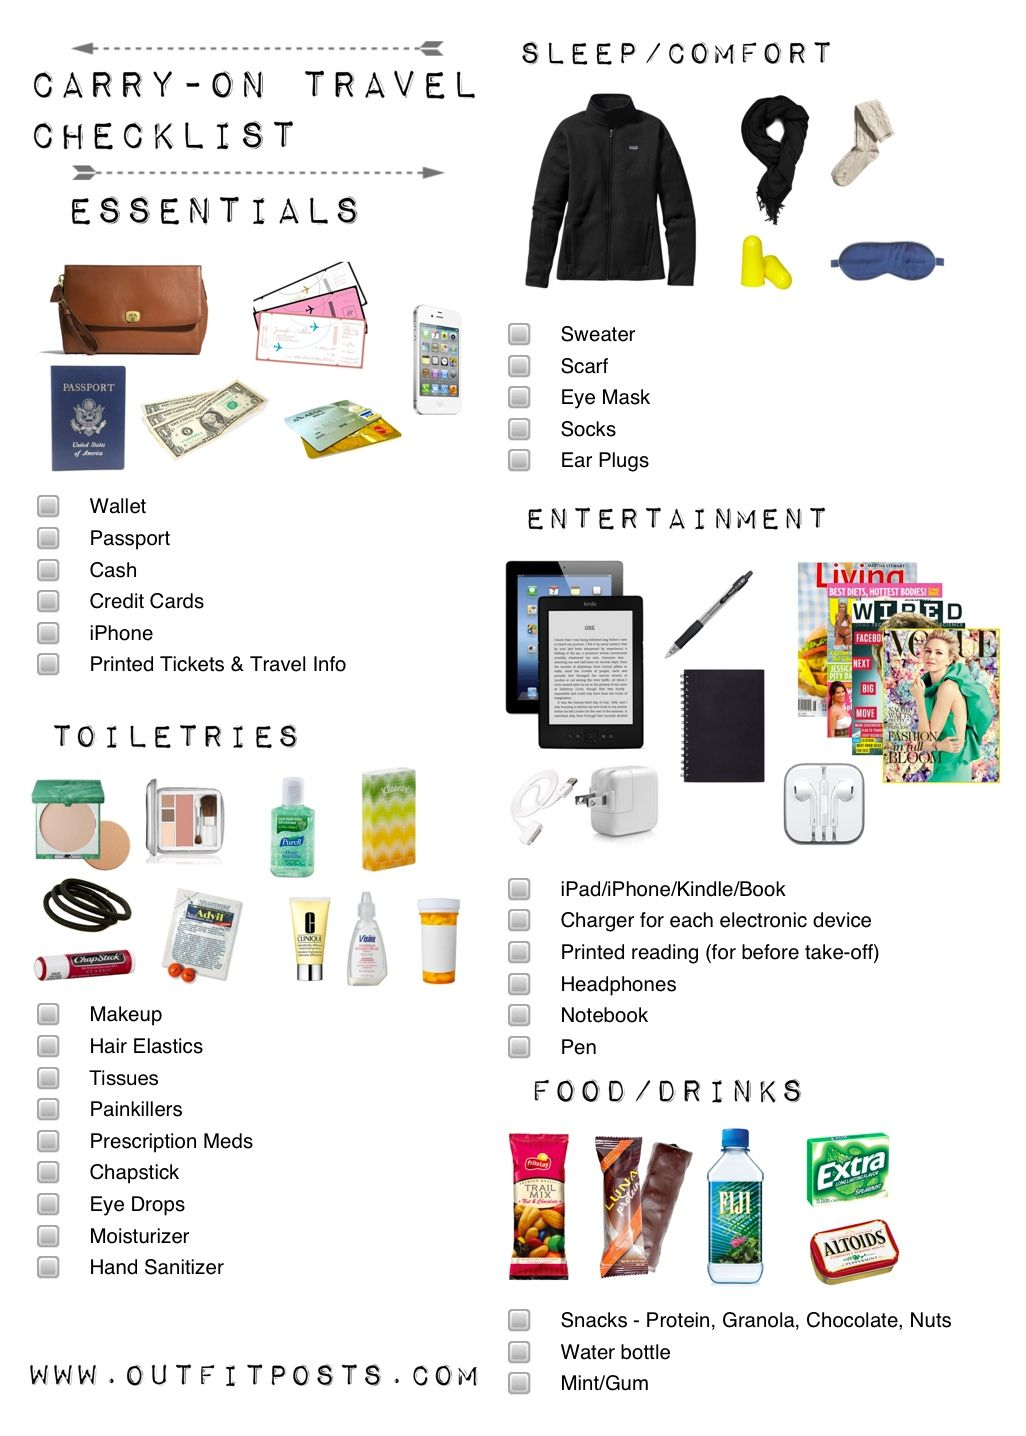 Things to Bring on an Airplane recommend